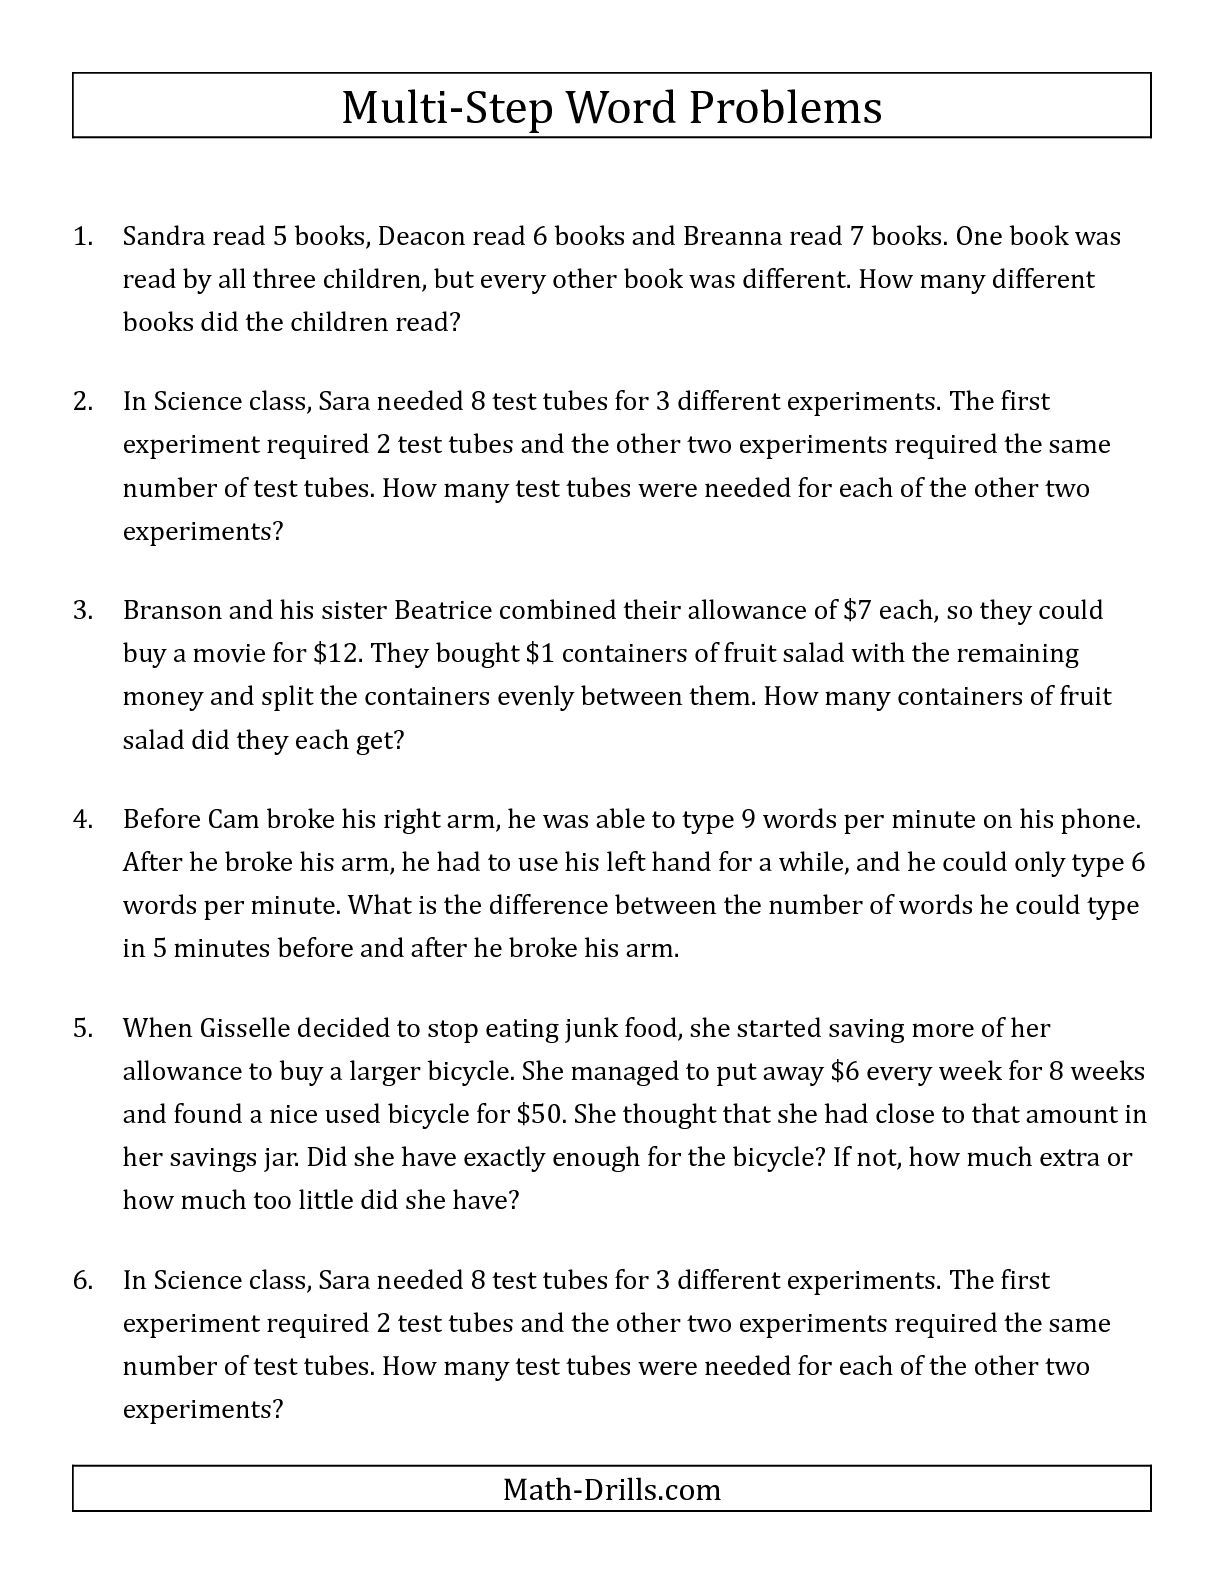 Worksheets Two Step Word Problems Worksheets the easy multi step word problems math worksheet from page at